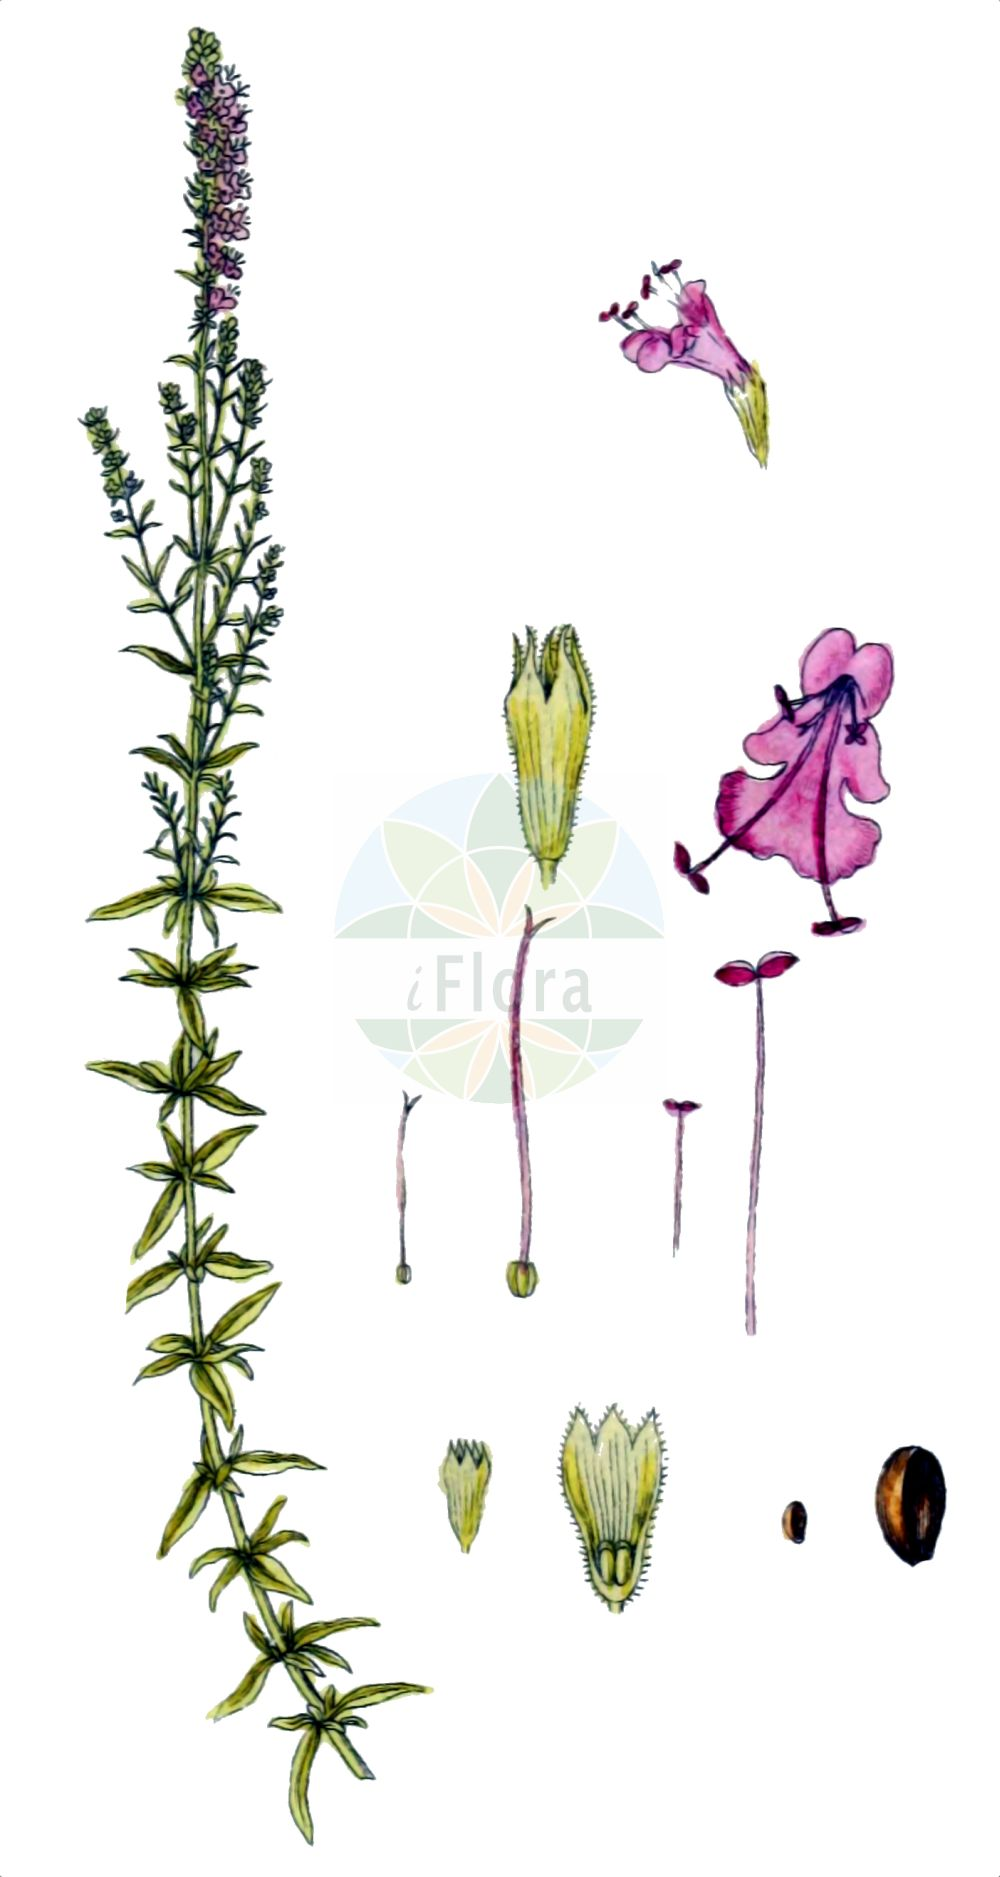 Historische Abbildung von Hyssopus officinalis (Echter Ysop - Hyssop). Das Bild zeigt Blatt, Bluete, Frucht und Same. ---- Historical Drawing of Hyssopus officinalis (Echter Ysop - Hyssop).The image is showing leaf, flower, fruit and seed.(Hyssopus officinalis,Echter Ysop,Hyssop,Hyssopus officinalis,Thymus hyssopus,Echter Ysop,Gewoehnlicher Ysop,Hyssop,Hyssopus,Ysop,Hyssop,Lamiaceae,Lippenbluetengewaechse,Lippenbluetler,Nettle family,Blatt,Bluete,Frucht,Same,leaf,flower,fruit,seed,Sturm (1796f))